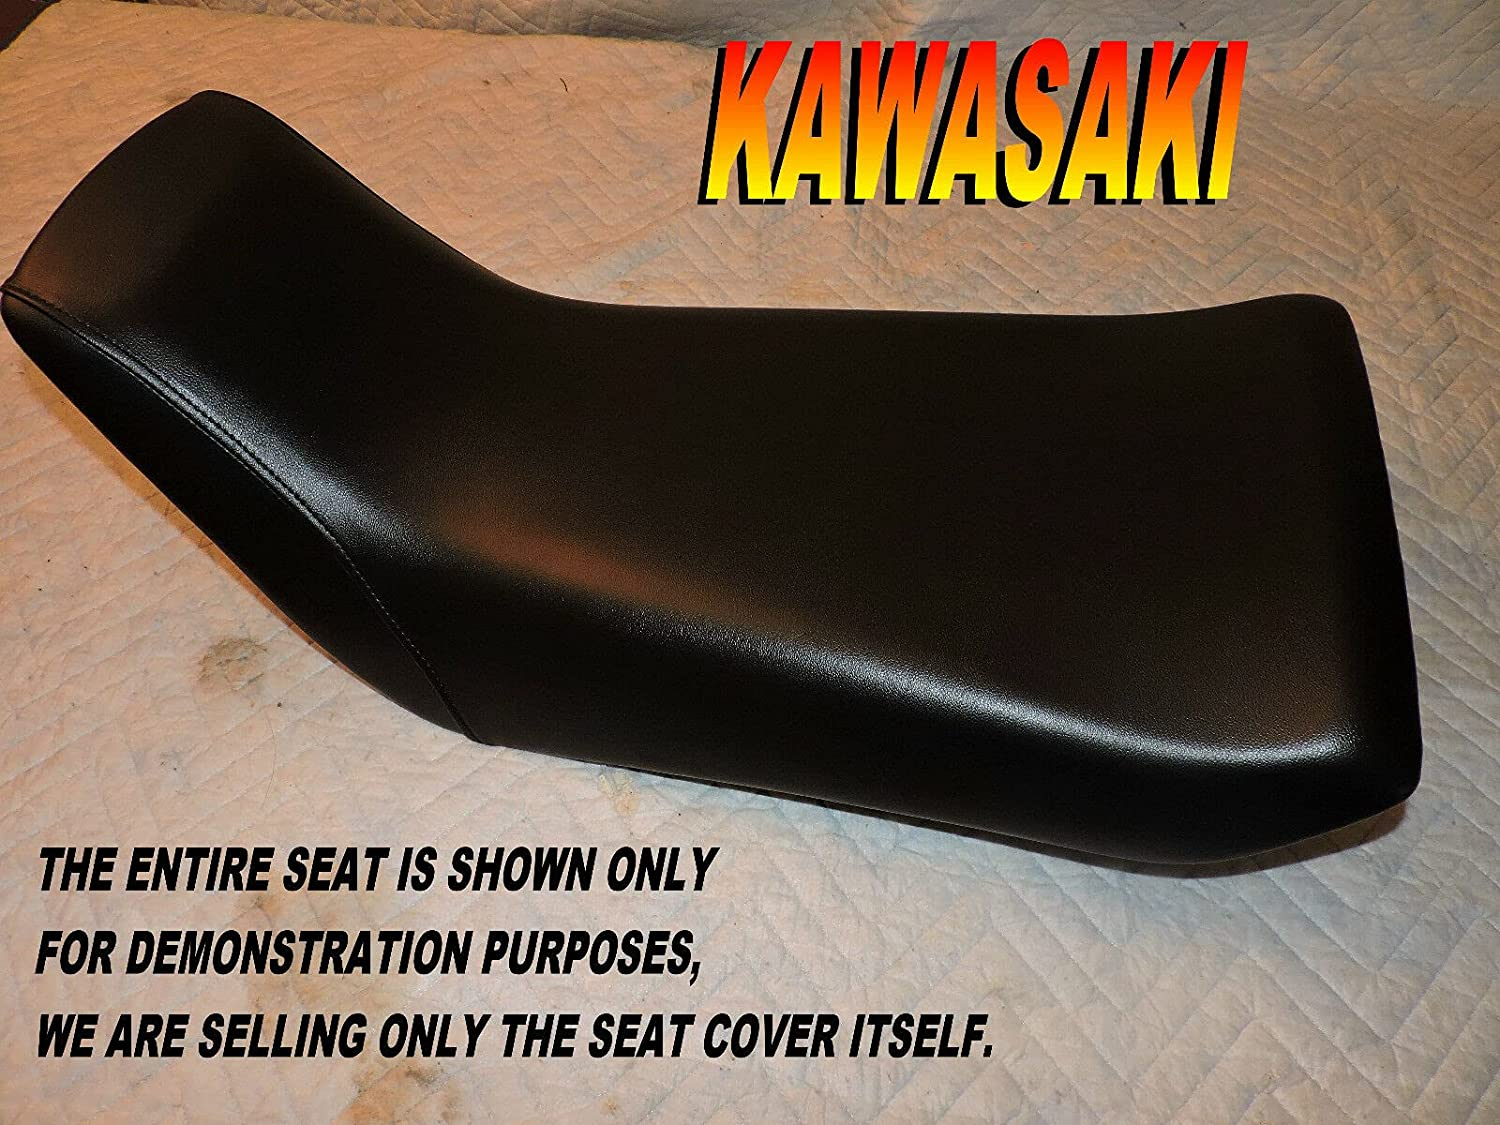 New Over item handling Replacement seat cover fits Kawasaki Bayou 220 250 K mart 1988-11